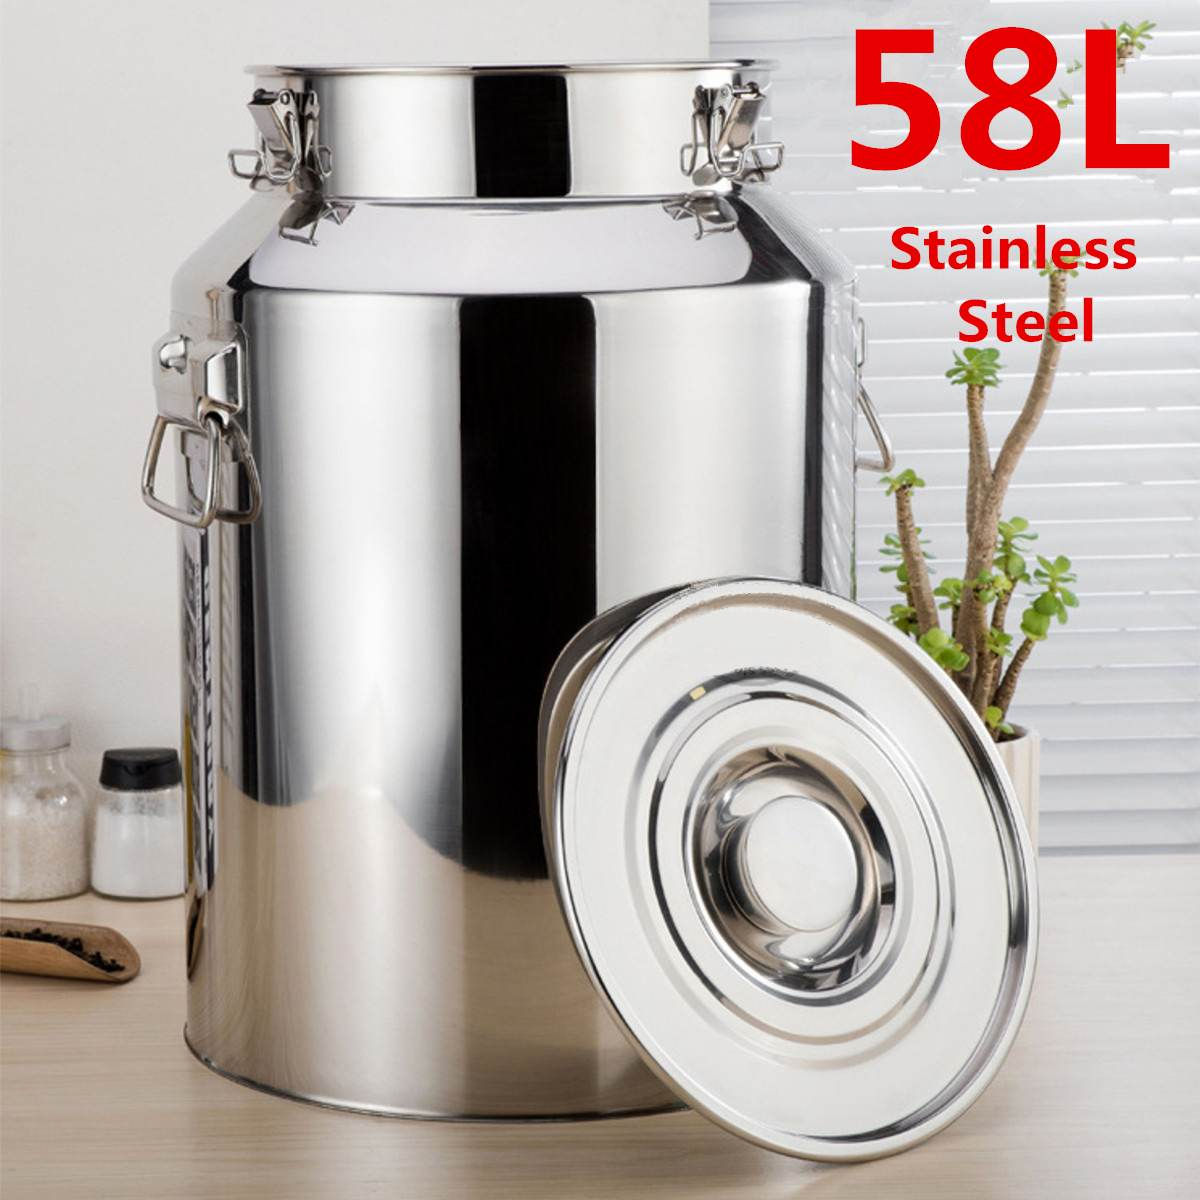 58L (35X60cm) Stainless Steel Fermenters Wine Fermented Beer Fermenters Milk Barrel Sealing High Quality Oil Barrel Tea Canister(China)